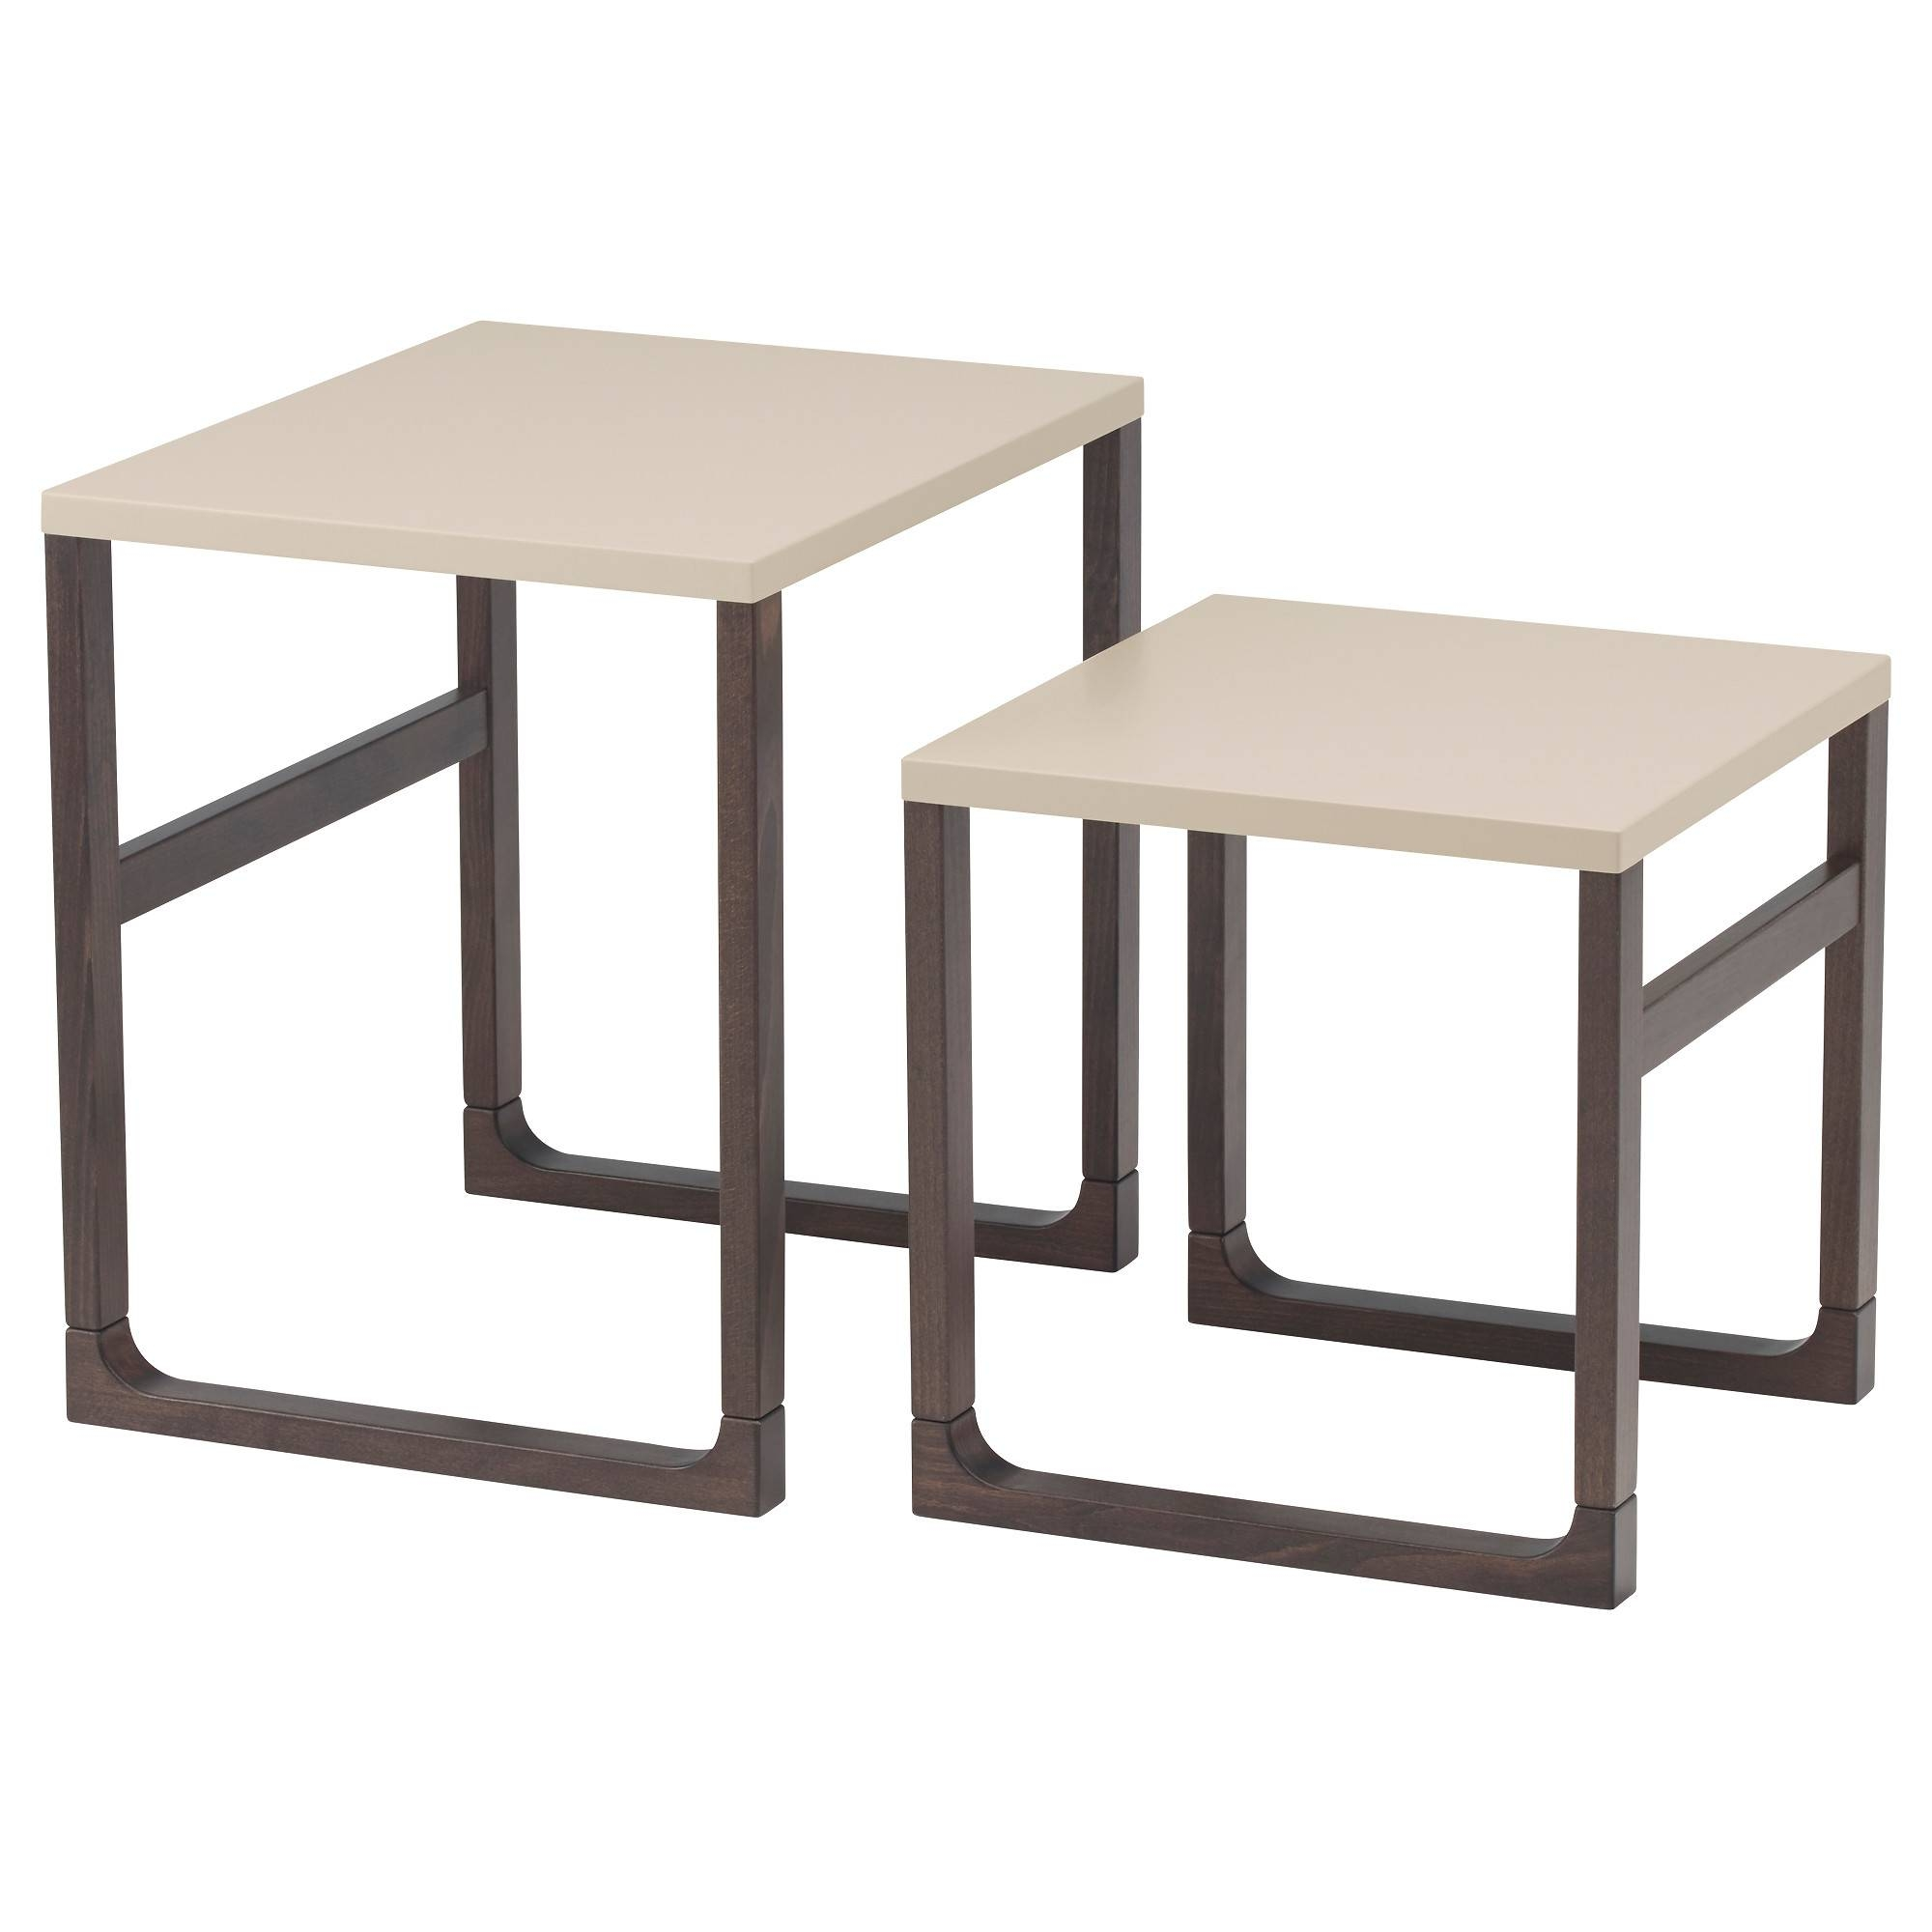 Rissna Nest Of Tables, Set Of 2 Beige - Ikea in Nest Coffee Tables (Image 21 of 30)